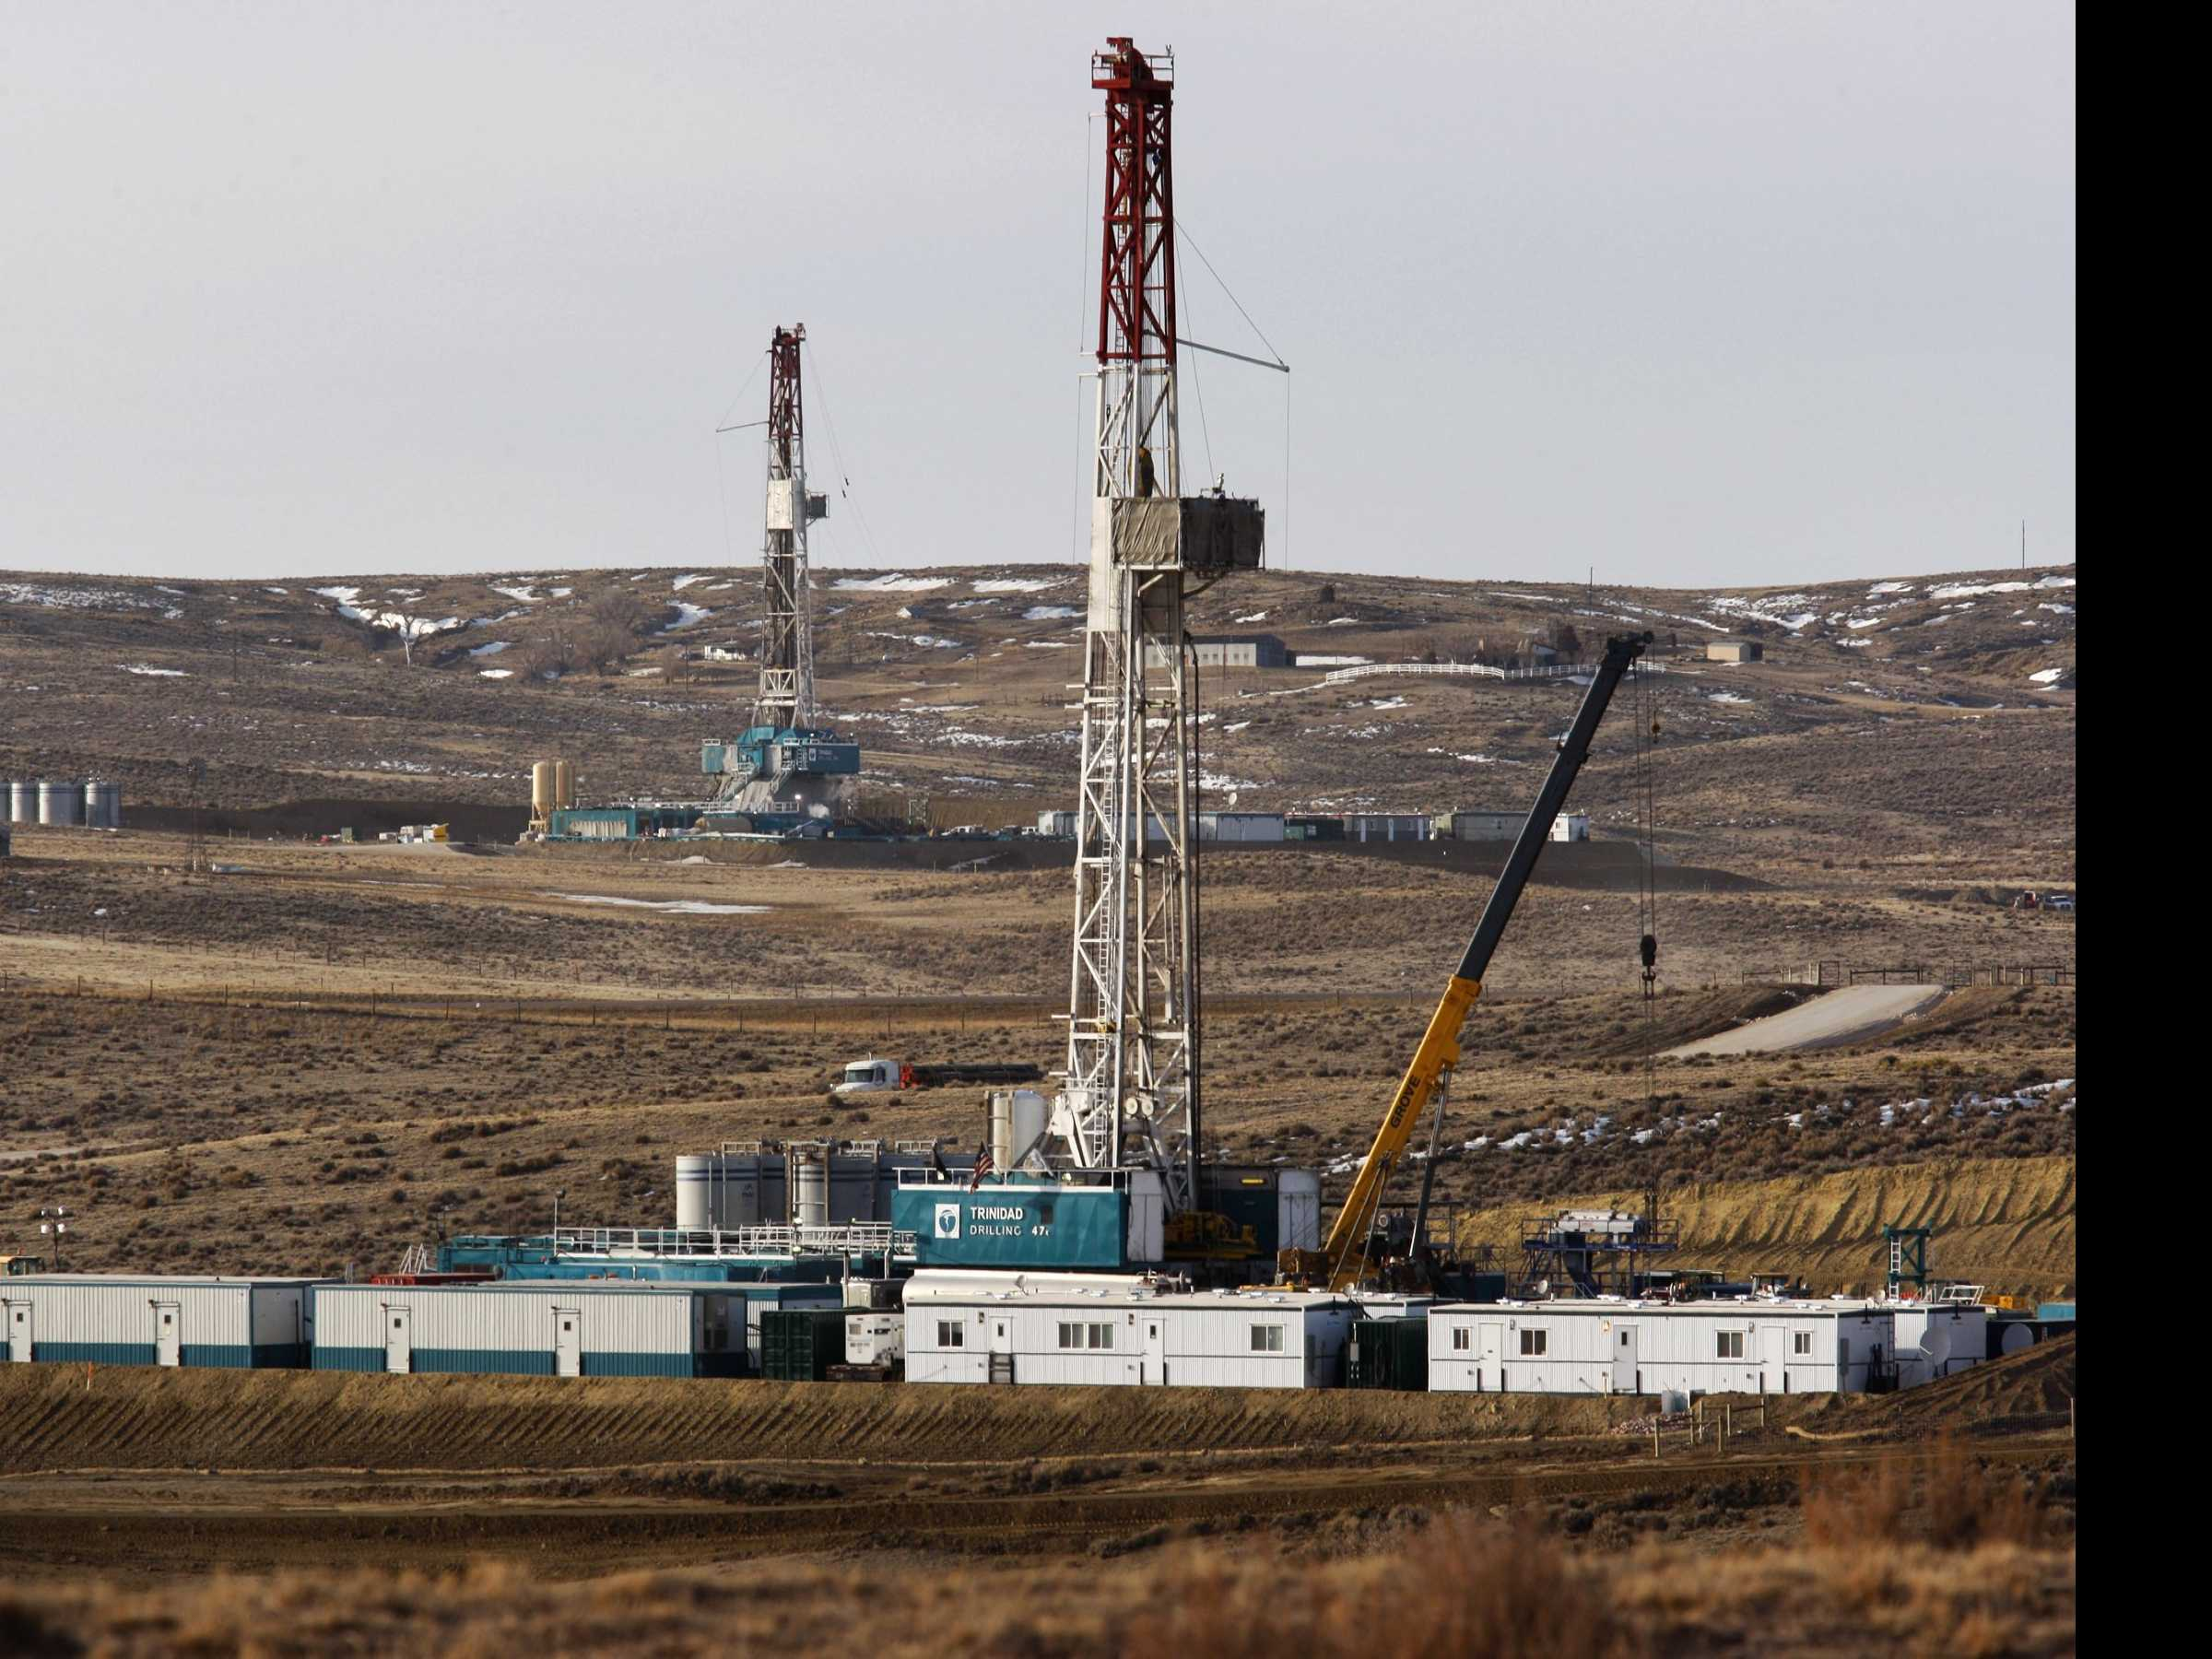 U.S. Judge Blocks Oil, Gas Drilling over Climate Change